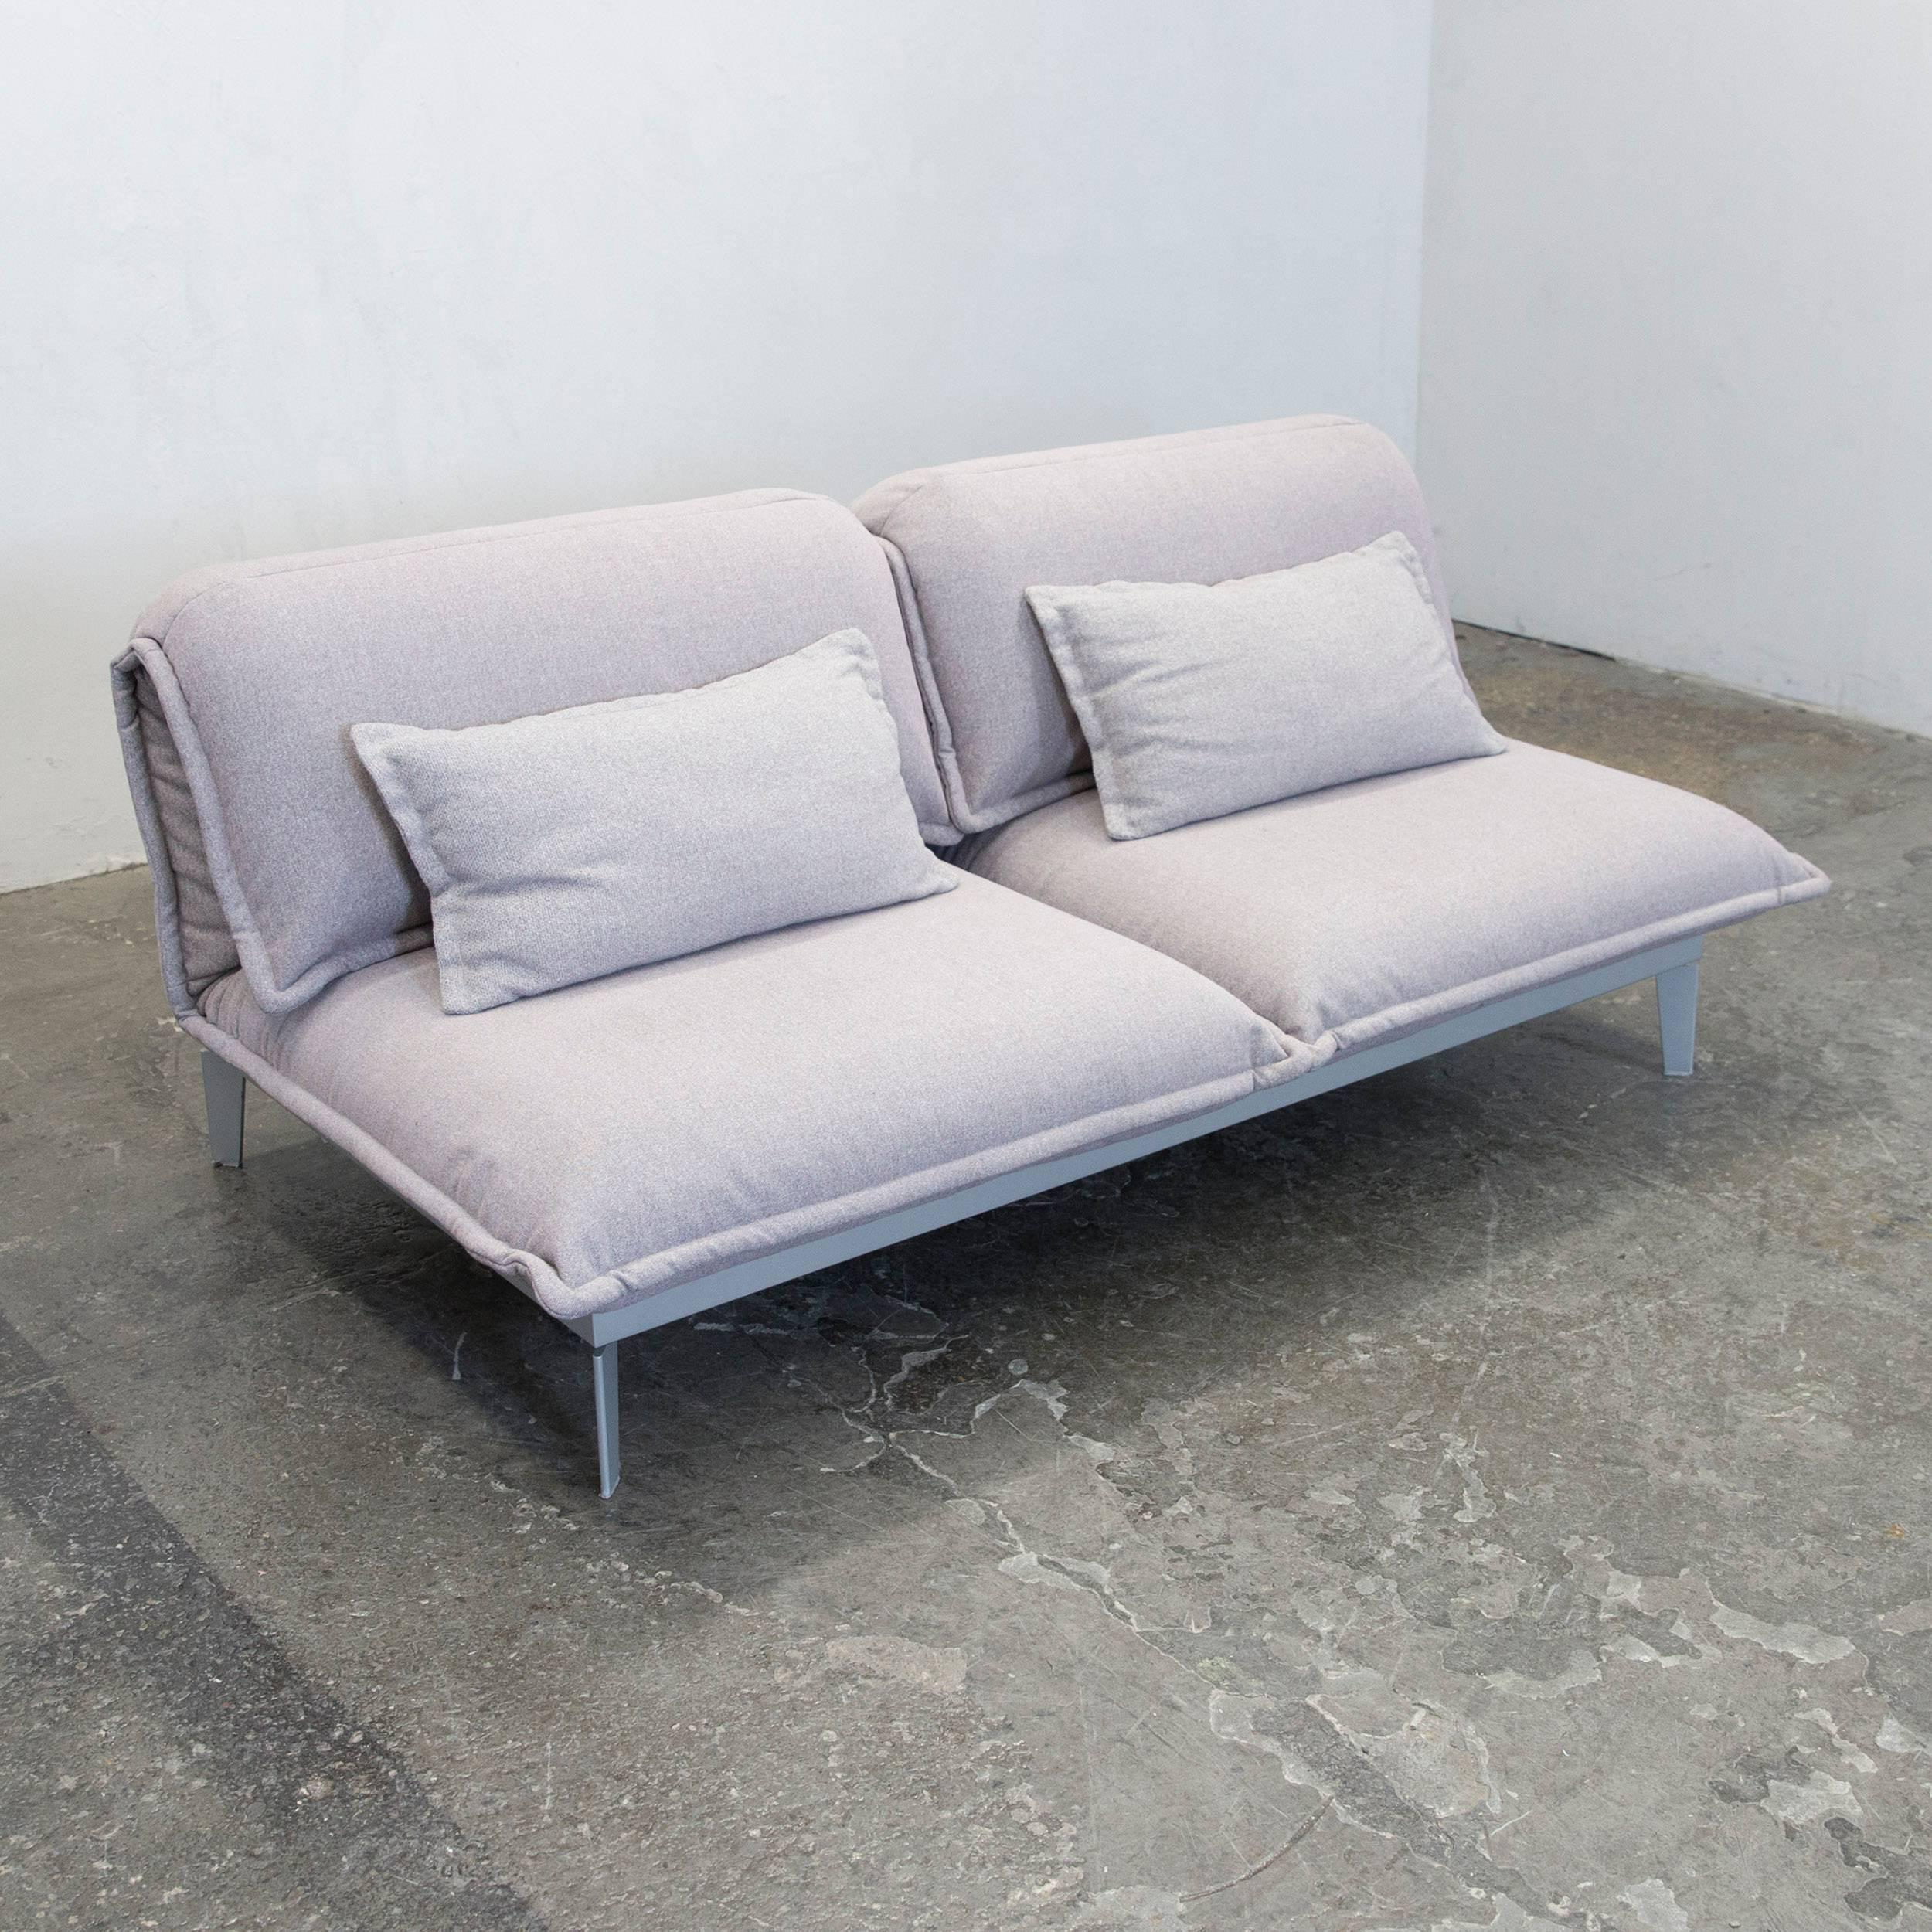 Rolf Benz Sofa Ebay Rolf Benz Nova Designer Sofa Grey Rose Lilac Fabric Two Seat Function Couch